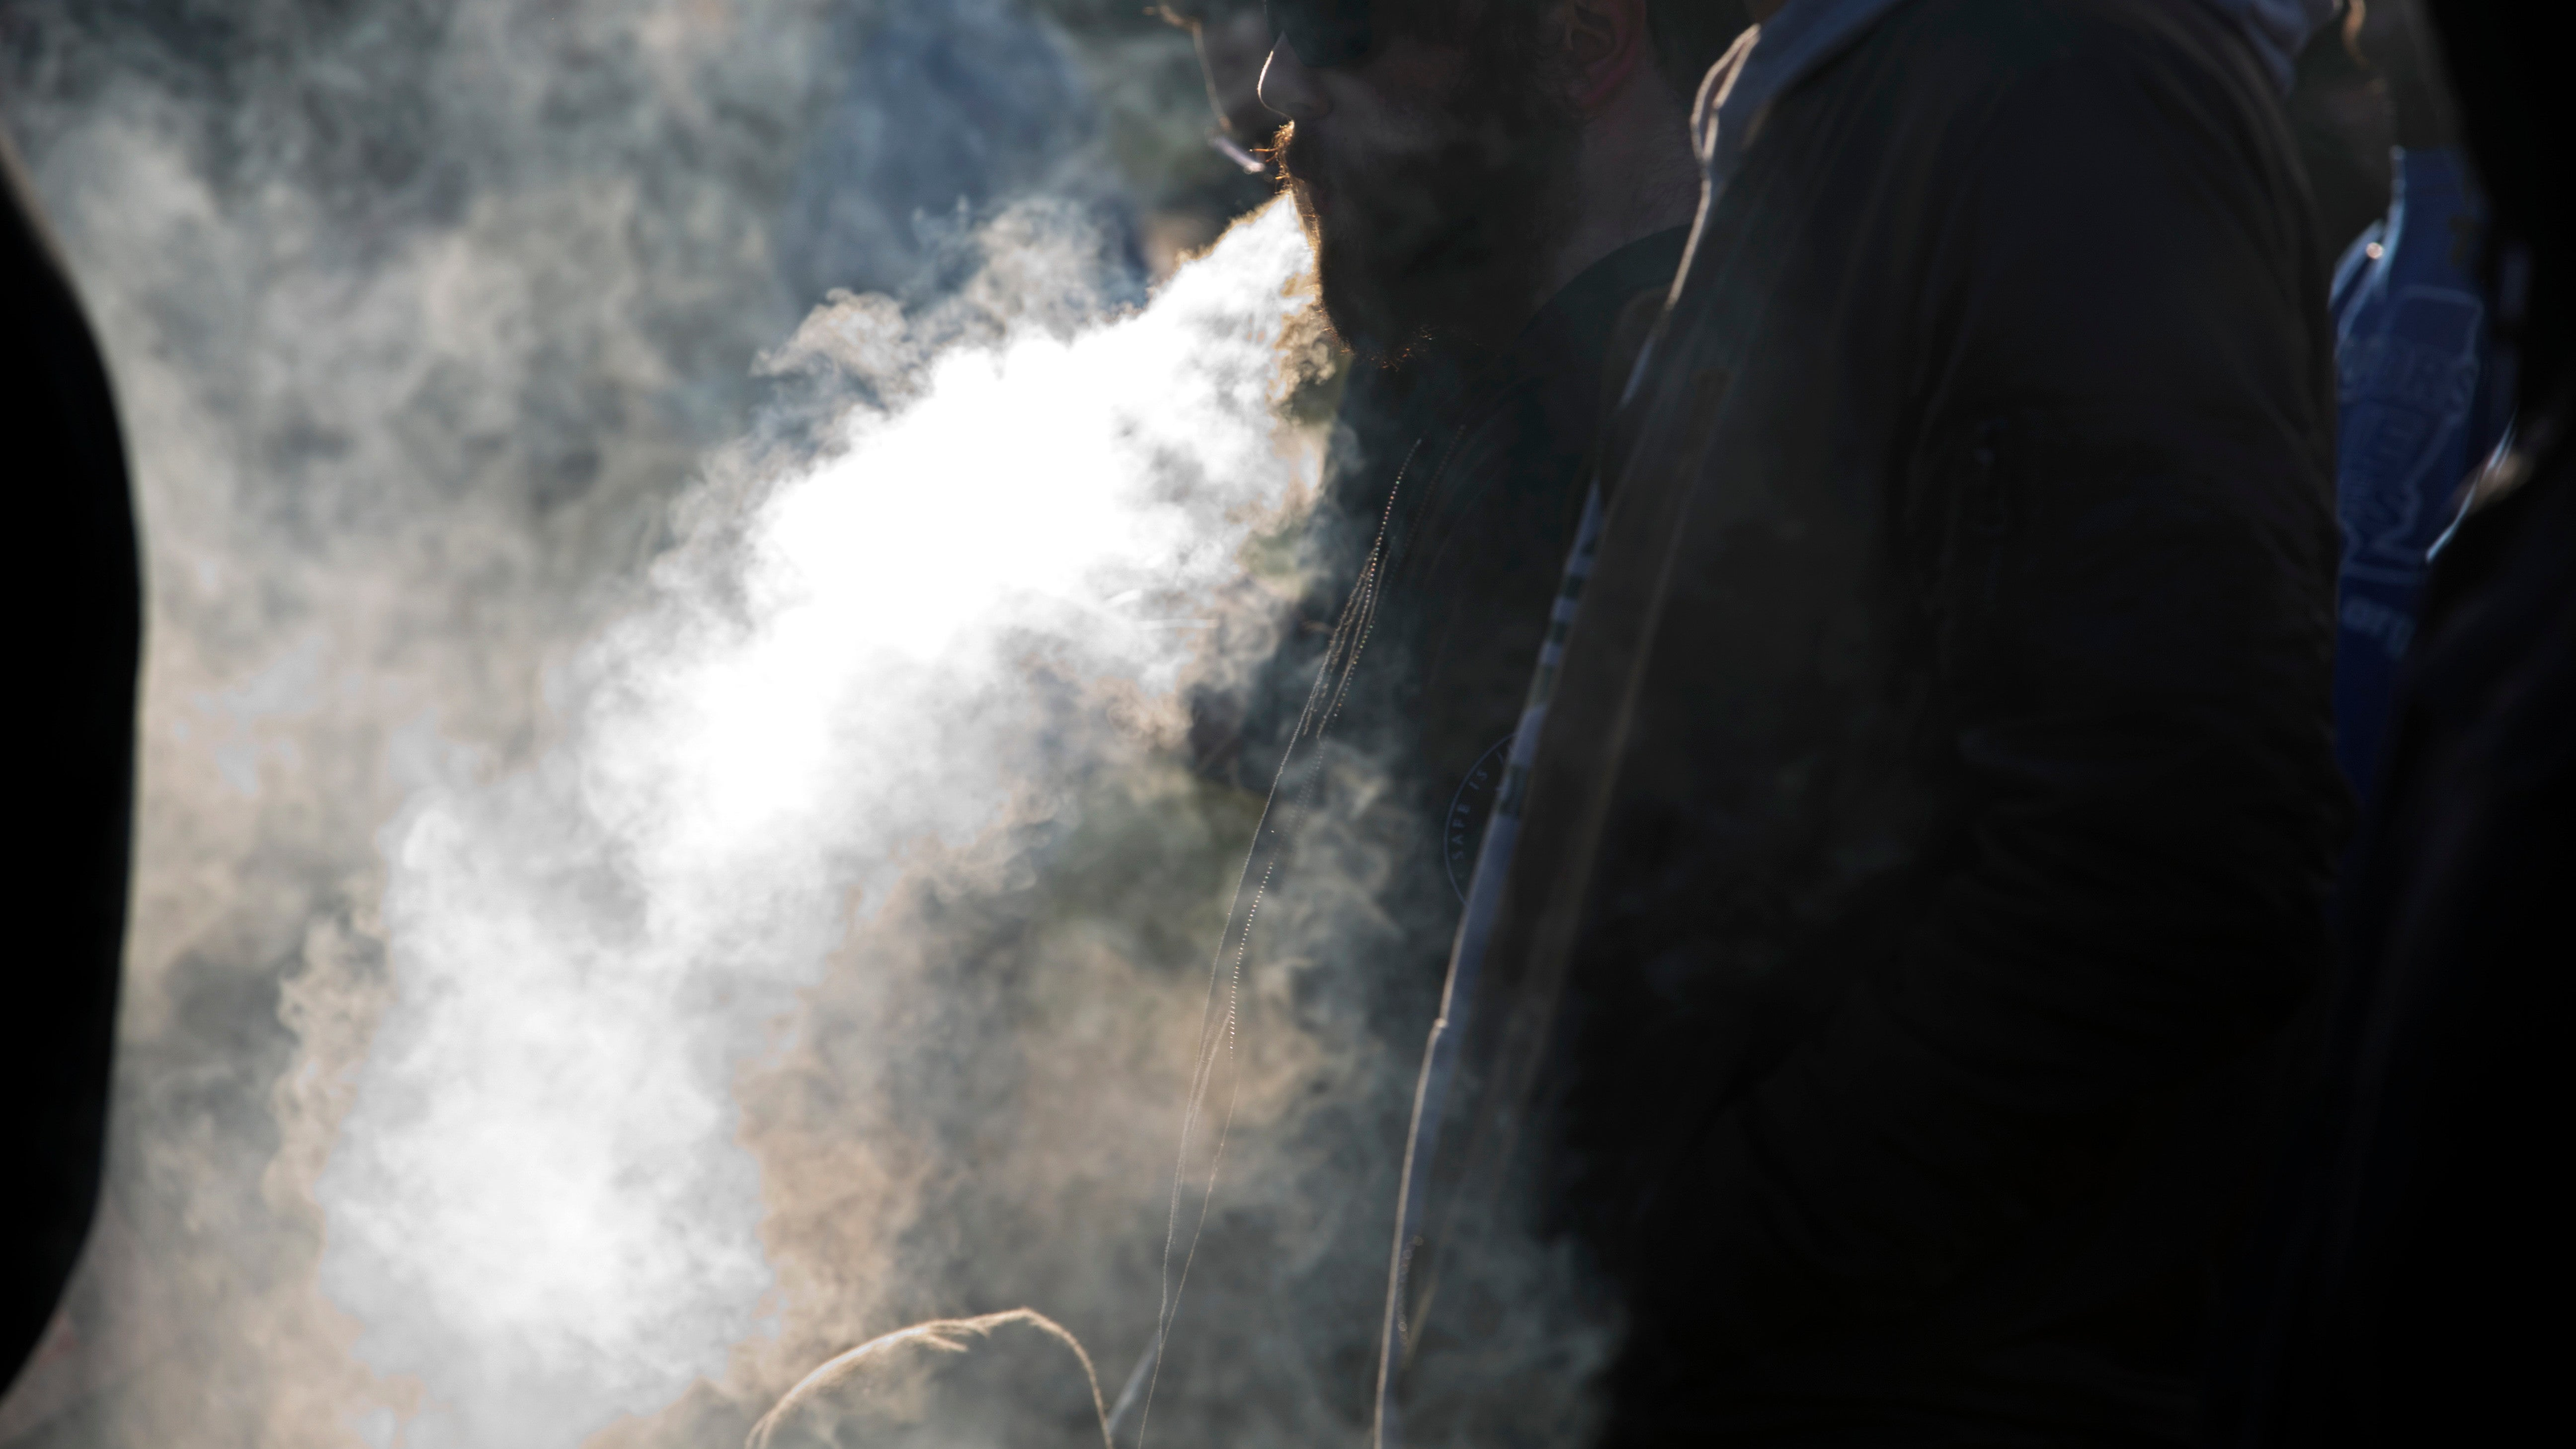 E-Cigarettes Don't Have To Be Tainted To Send You To The Hospital, UK Case Shows